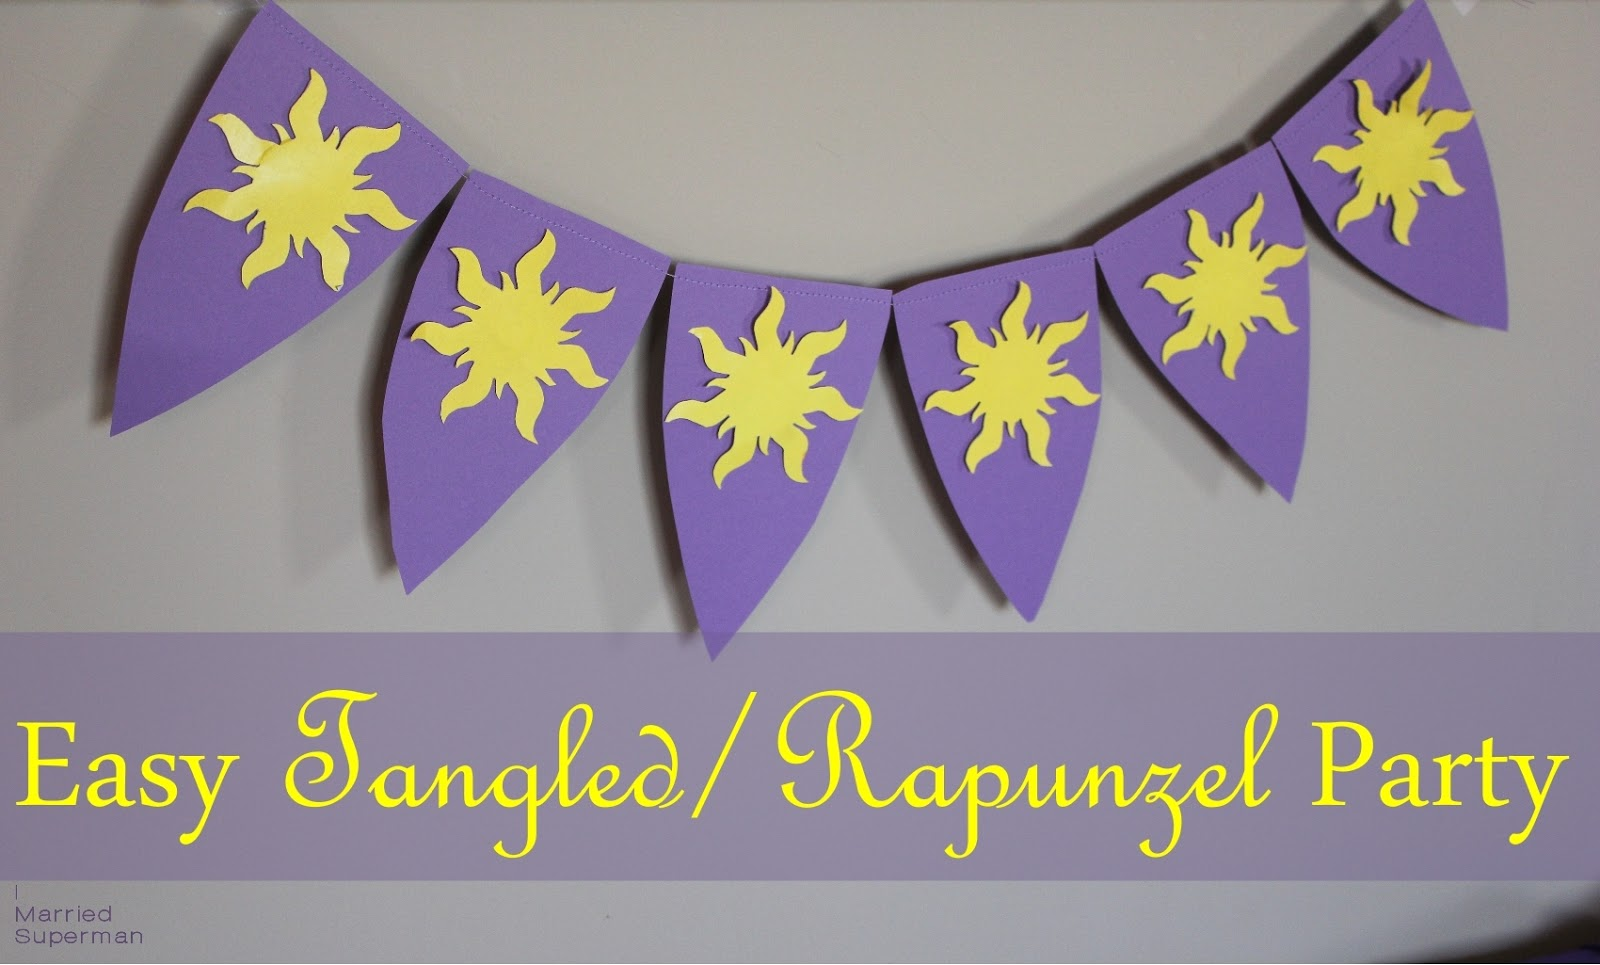 I Married Superman: Easy Tangled/Rapunzel Party